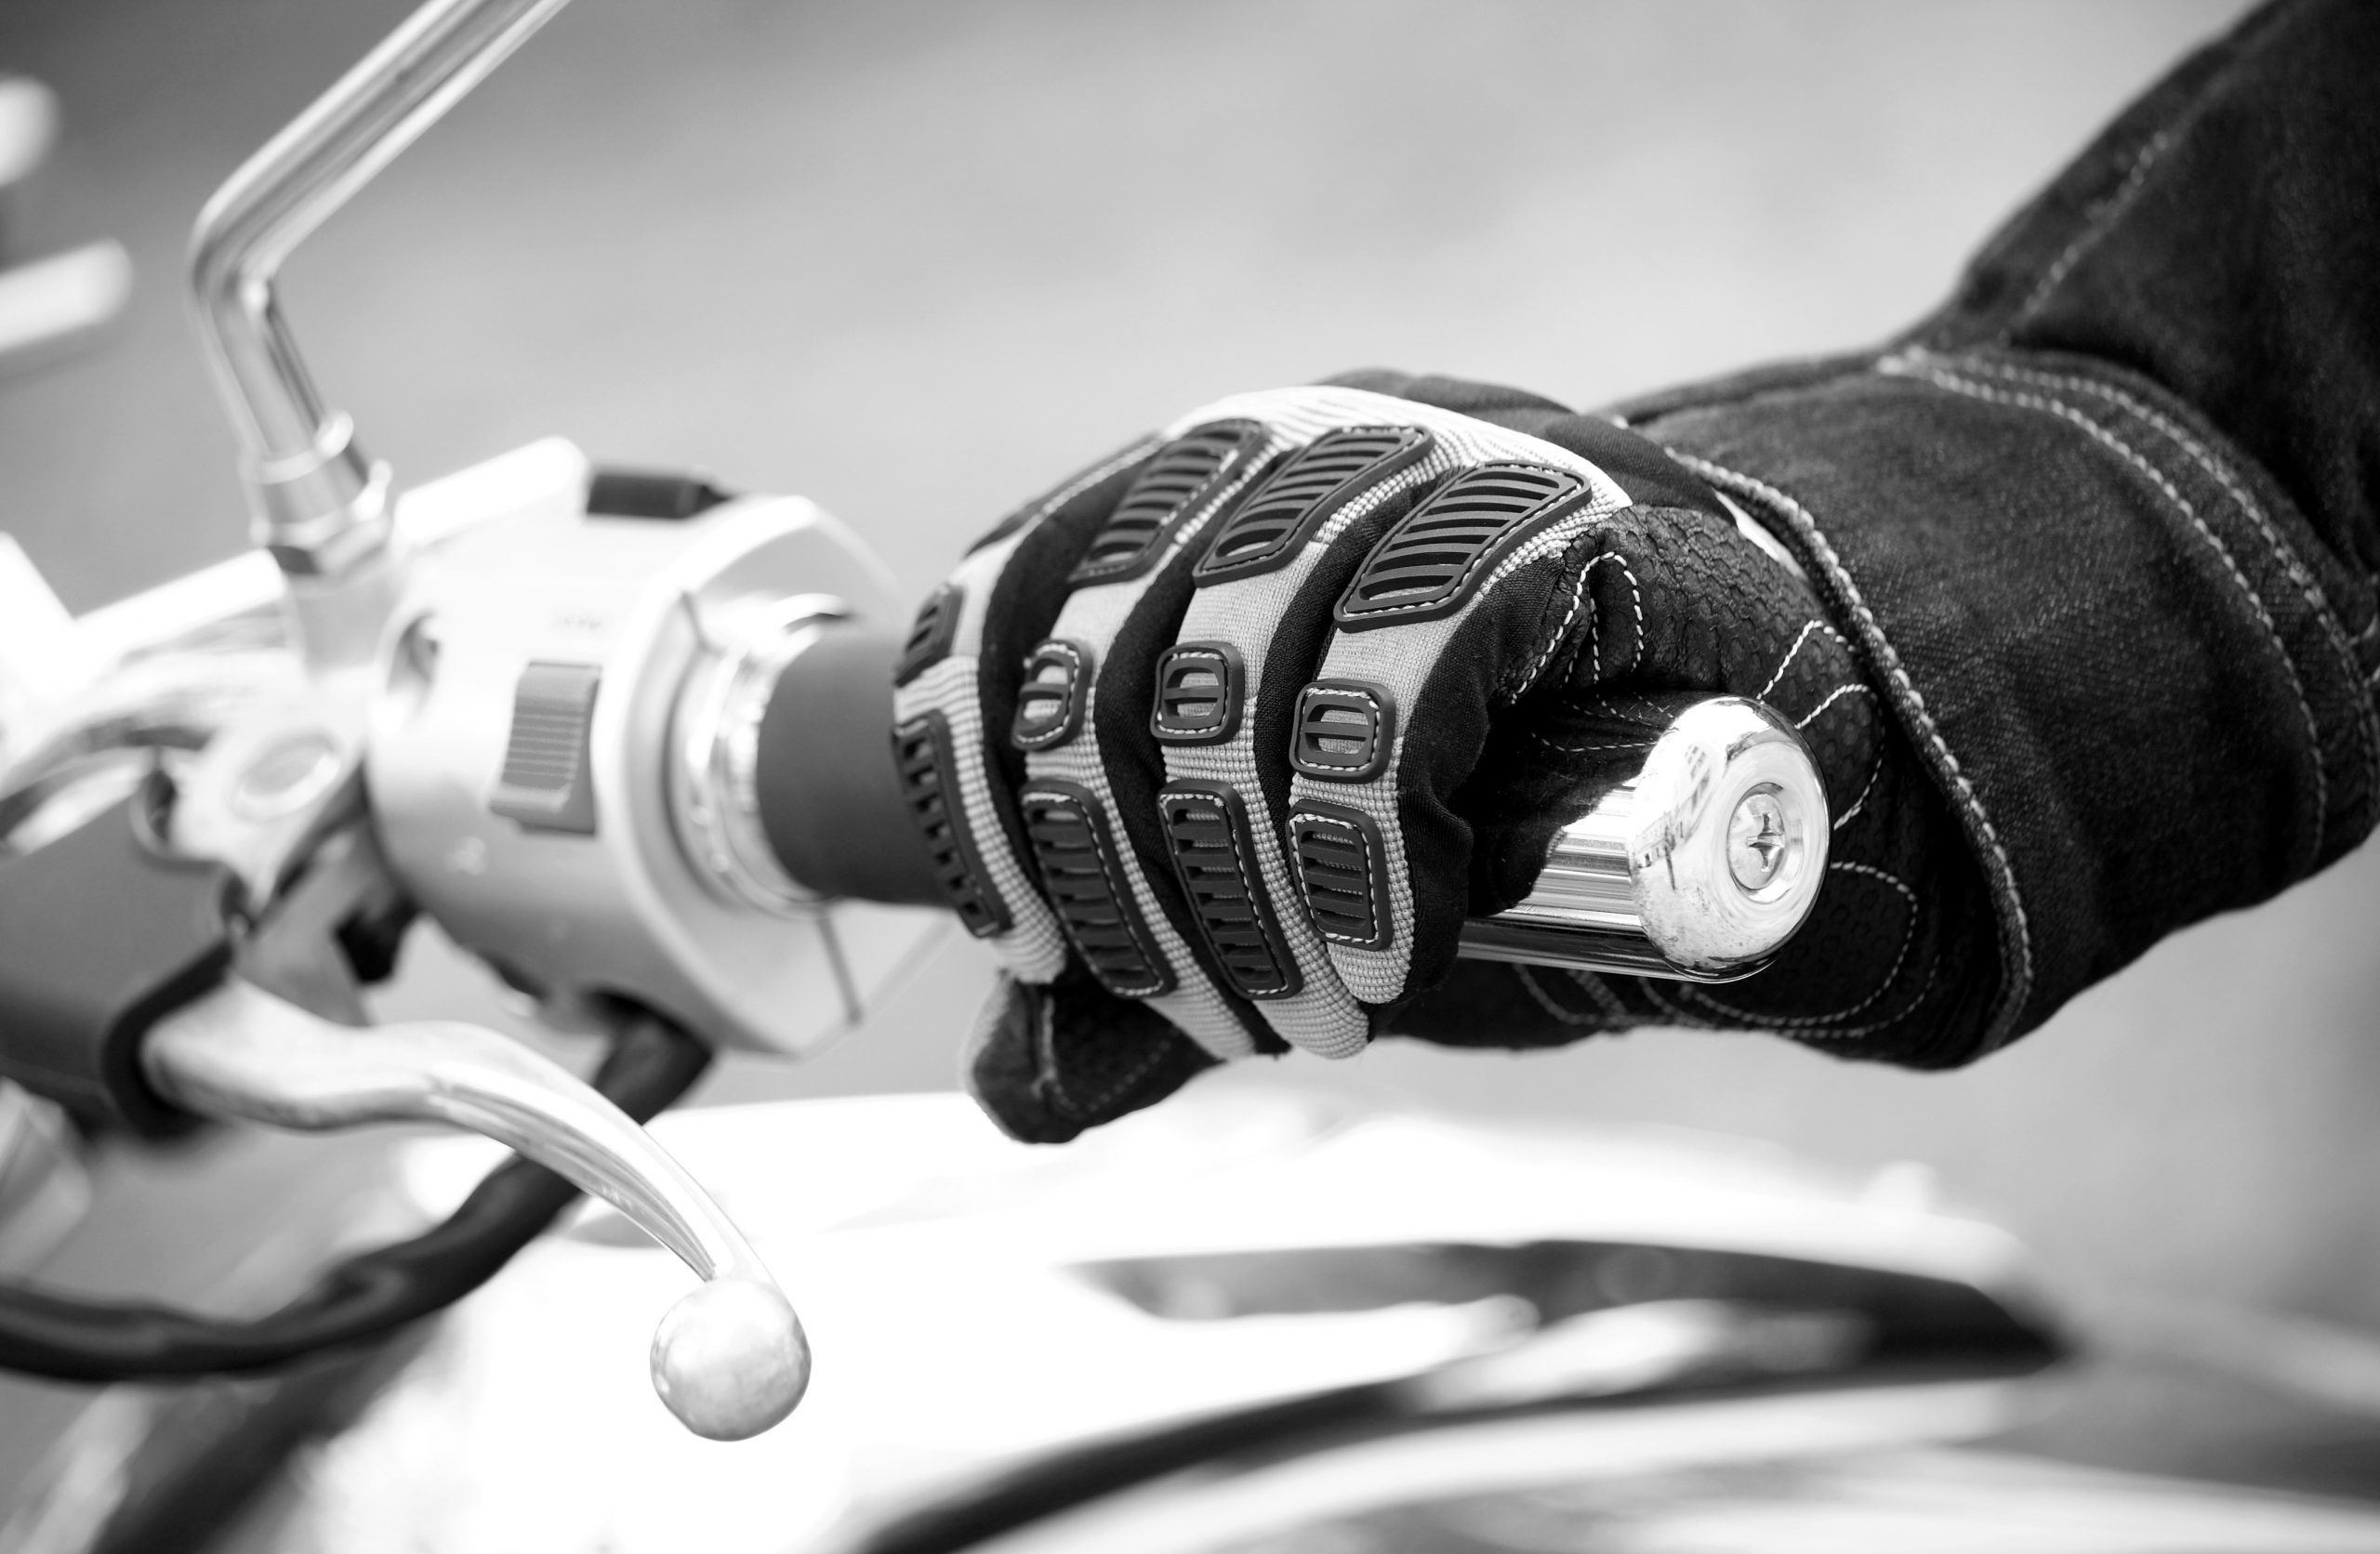 motorcycling innovations glove